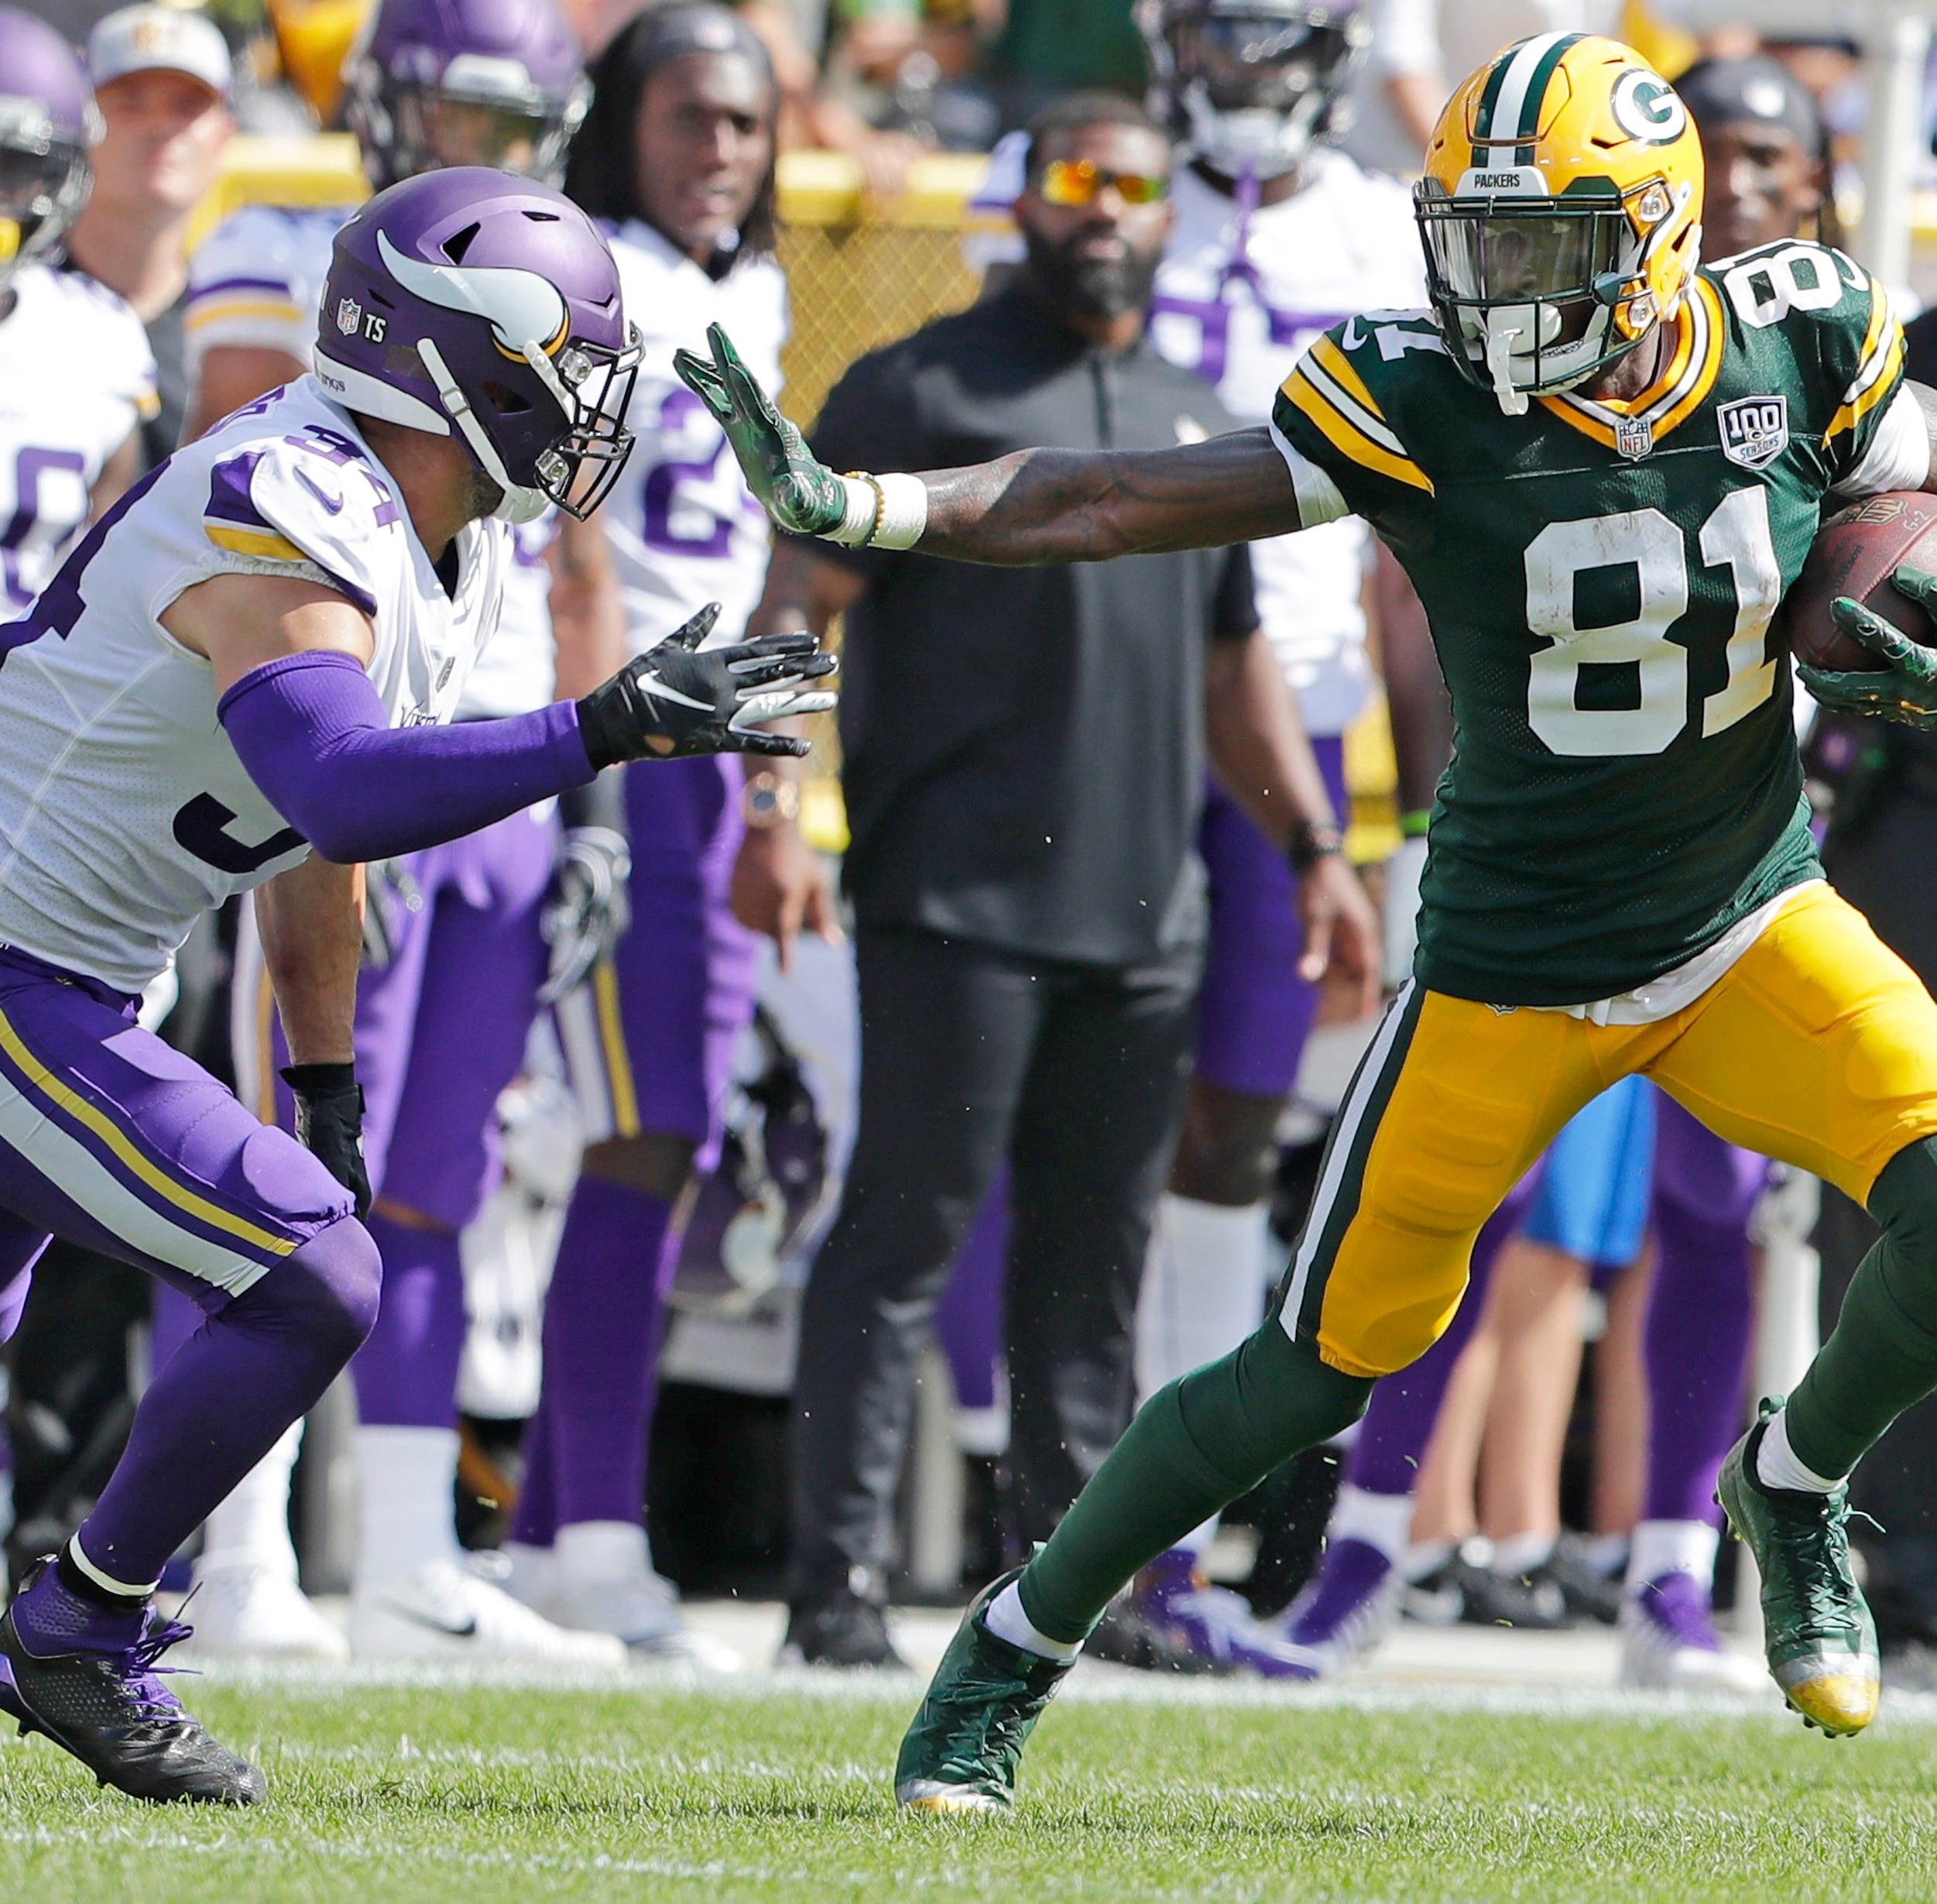 Dougherty: Six young players with potential to elevate Packers into title contention